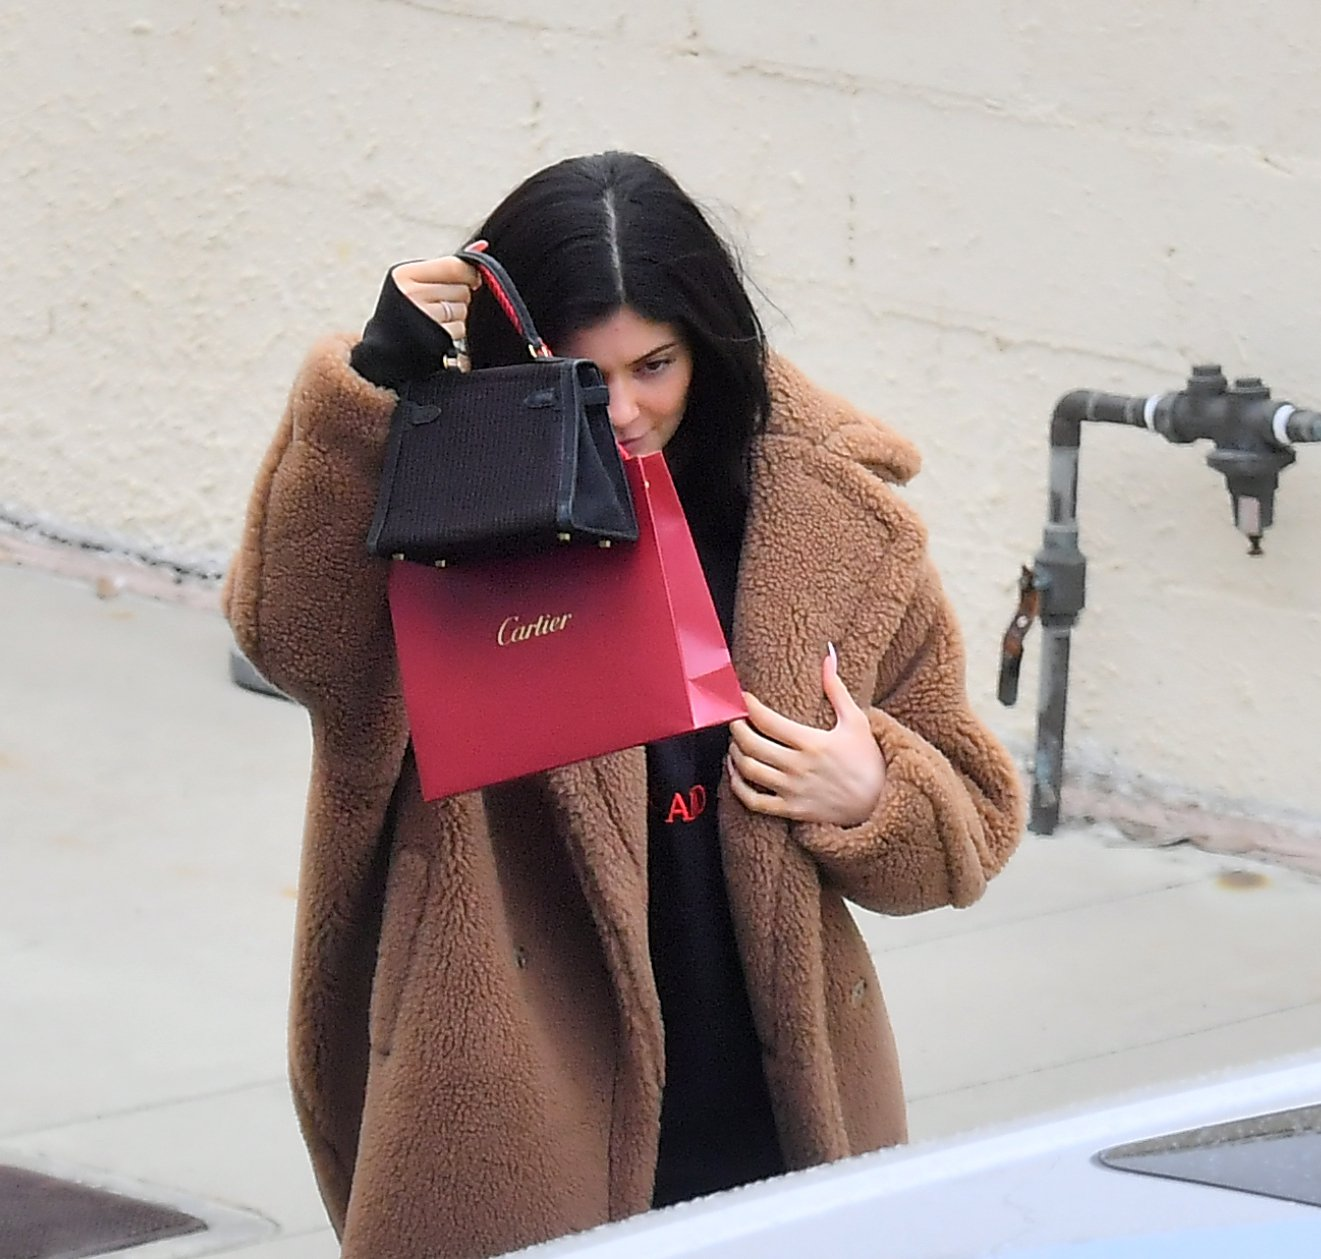 Kylie Jenner seen in public for the first time since it was reported that her Best friend jordyn woods cheated with Tristan Thompson. The reality Star Was seen shopping for jewelry with a friend. 21 Feb 2019 Pictured: Kylie Jenner. Photo credit: Marksman/Snorlax / MEGA TheMegaAgency.com +1 888 505 6342